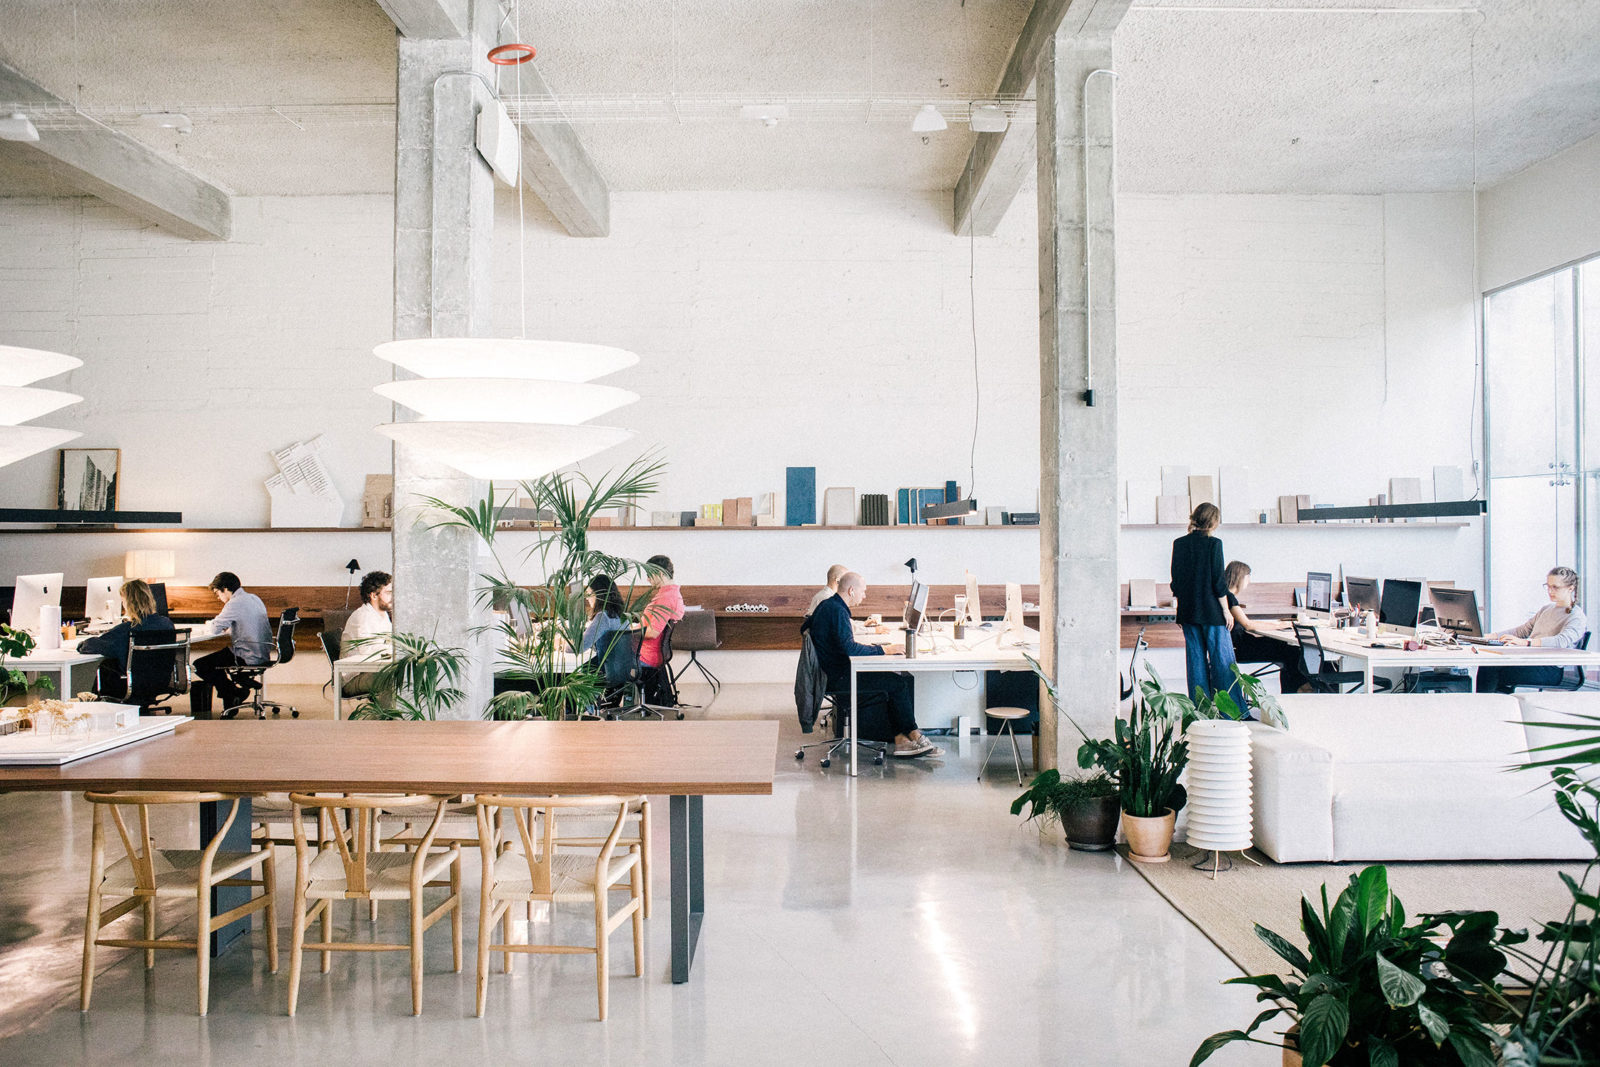 Born Out Of The Spanish Recession The Architectural Studio Mesura Carries Moderation And Respect As Its Core Values Friends Of Friends Freunde Von Freunden